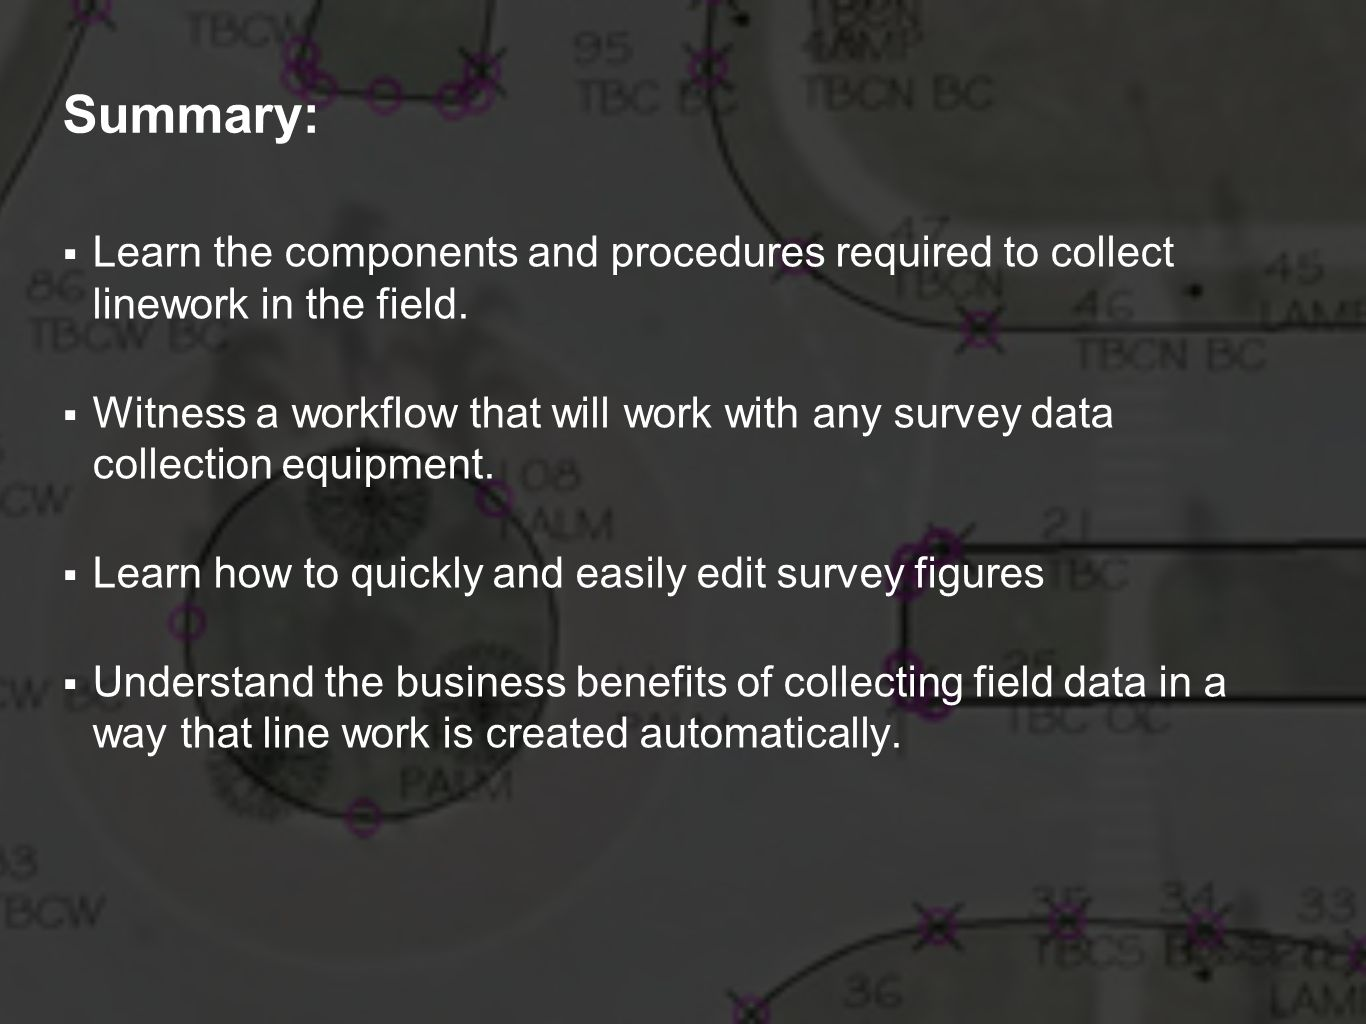 Summary: Learn the components and procedures required to collect linework in the field.